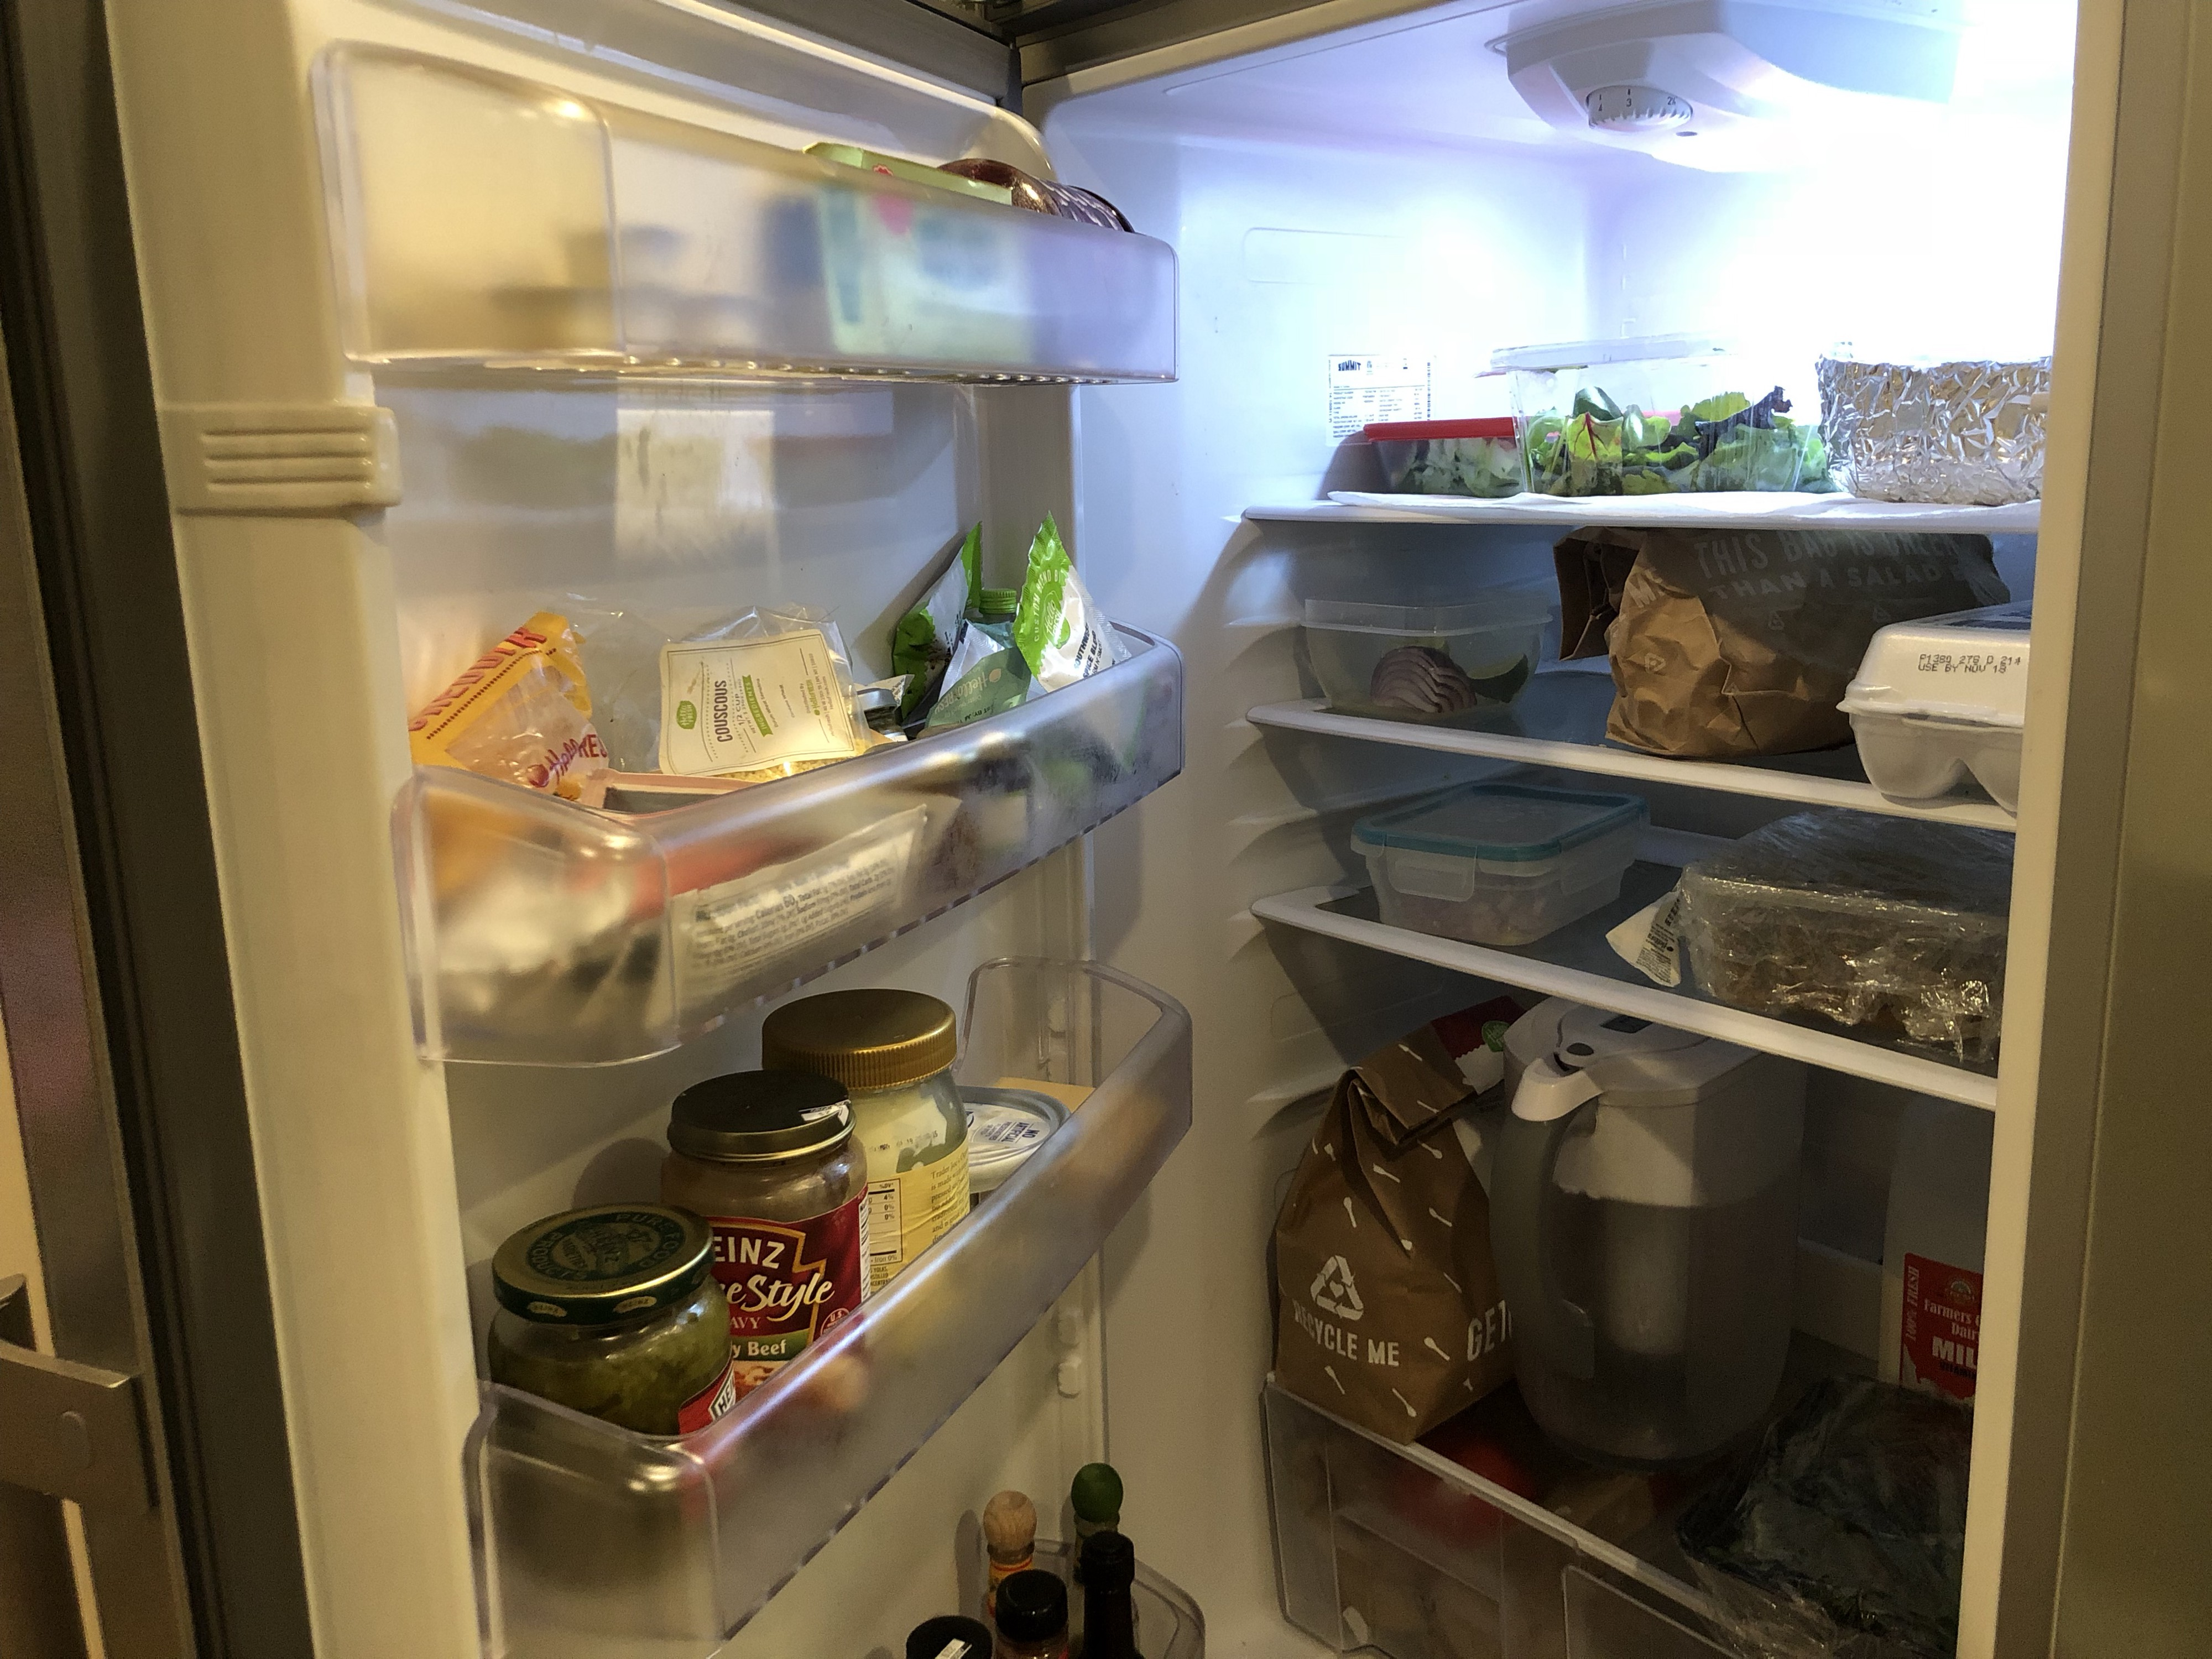 What's In Your Fridge? - The Brooklyn Ink - Medium